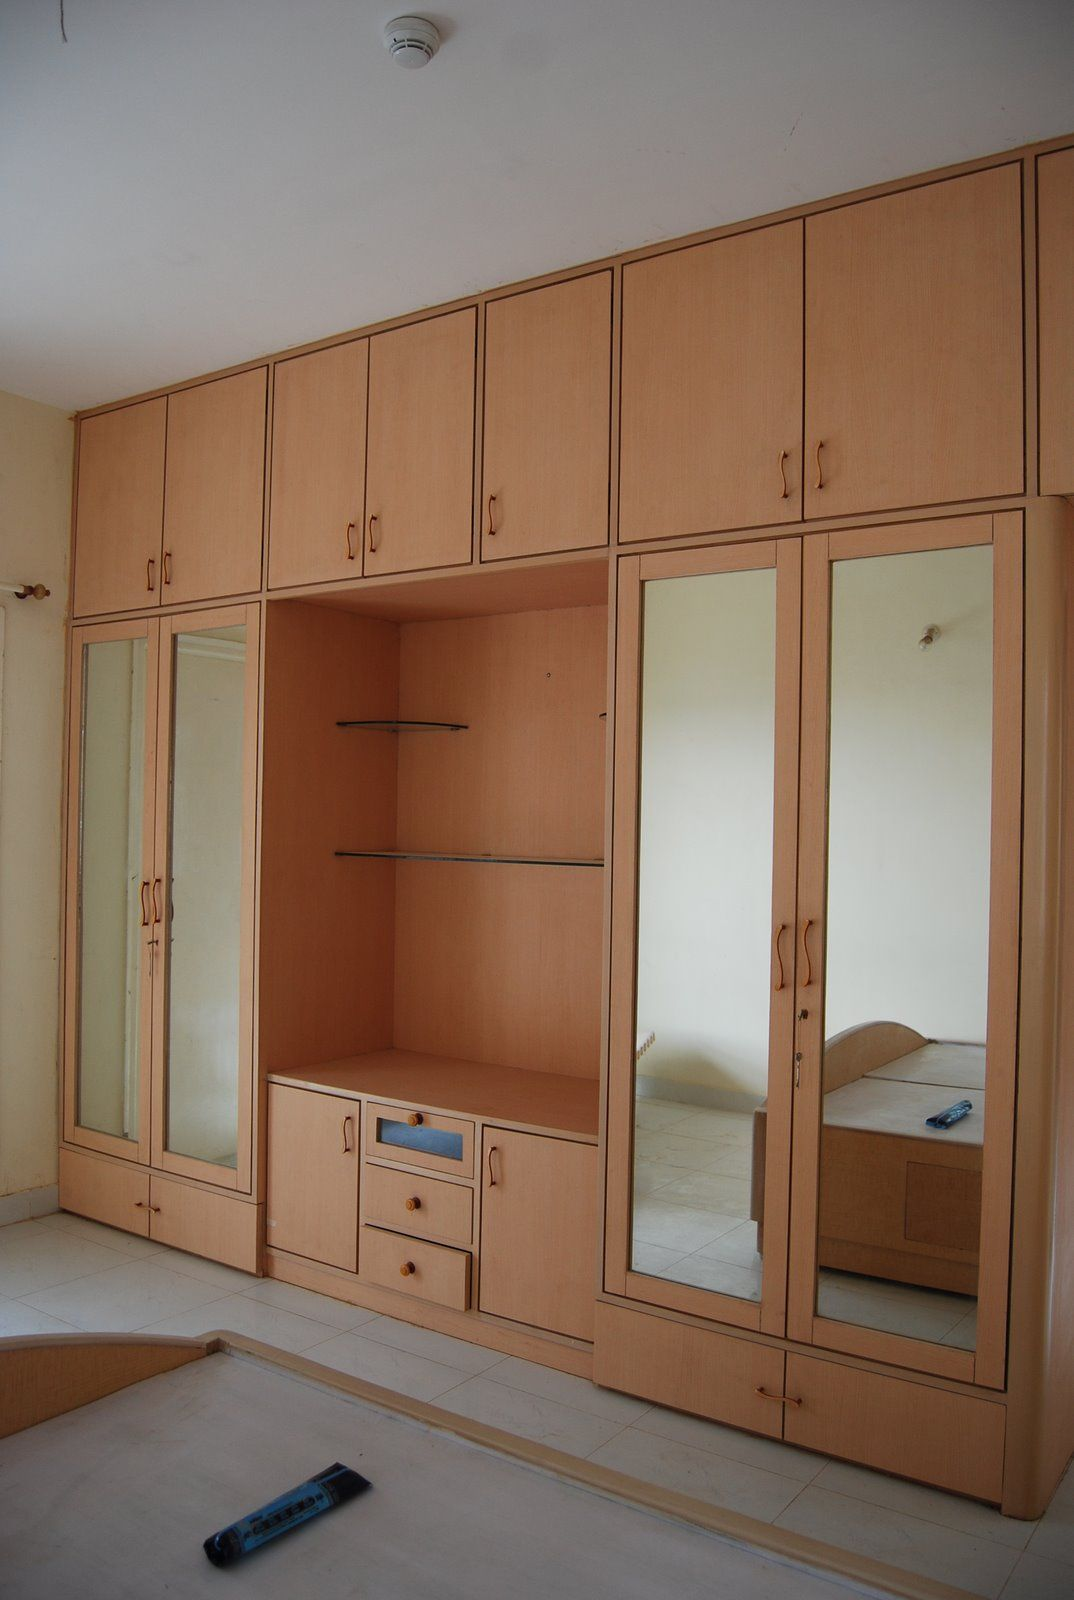 bedroom wardrobe design playwood wadrobe with cabinets also clothes hangers trendy - Designs For Wardrobes In Bedrooms